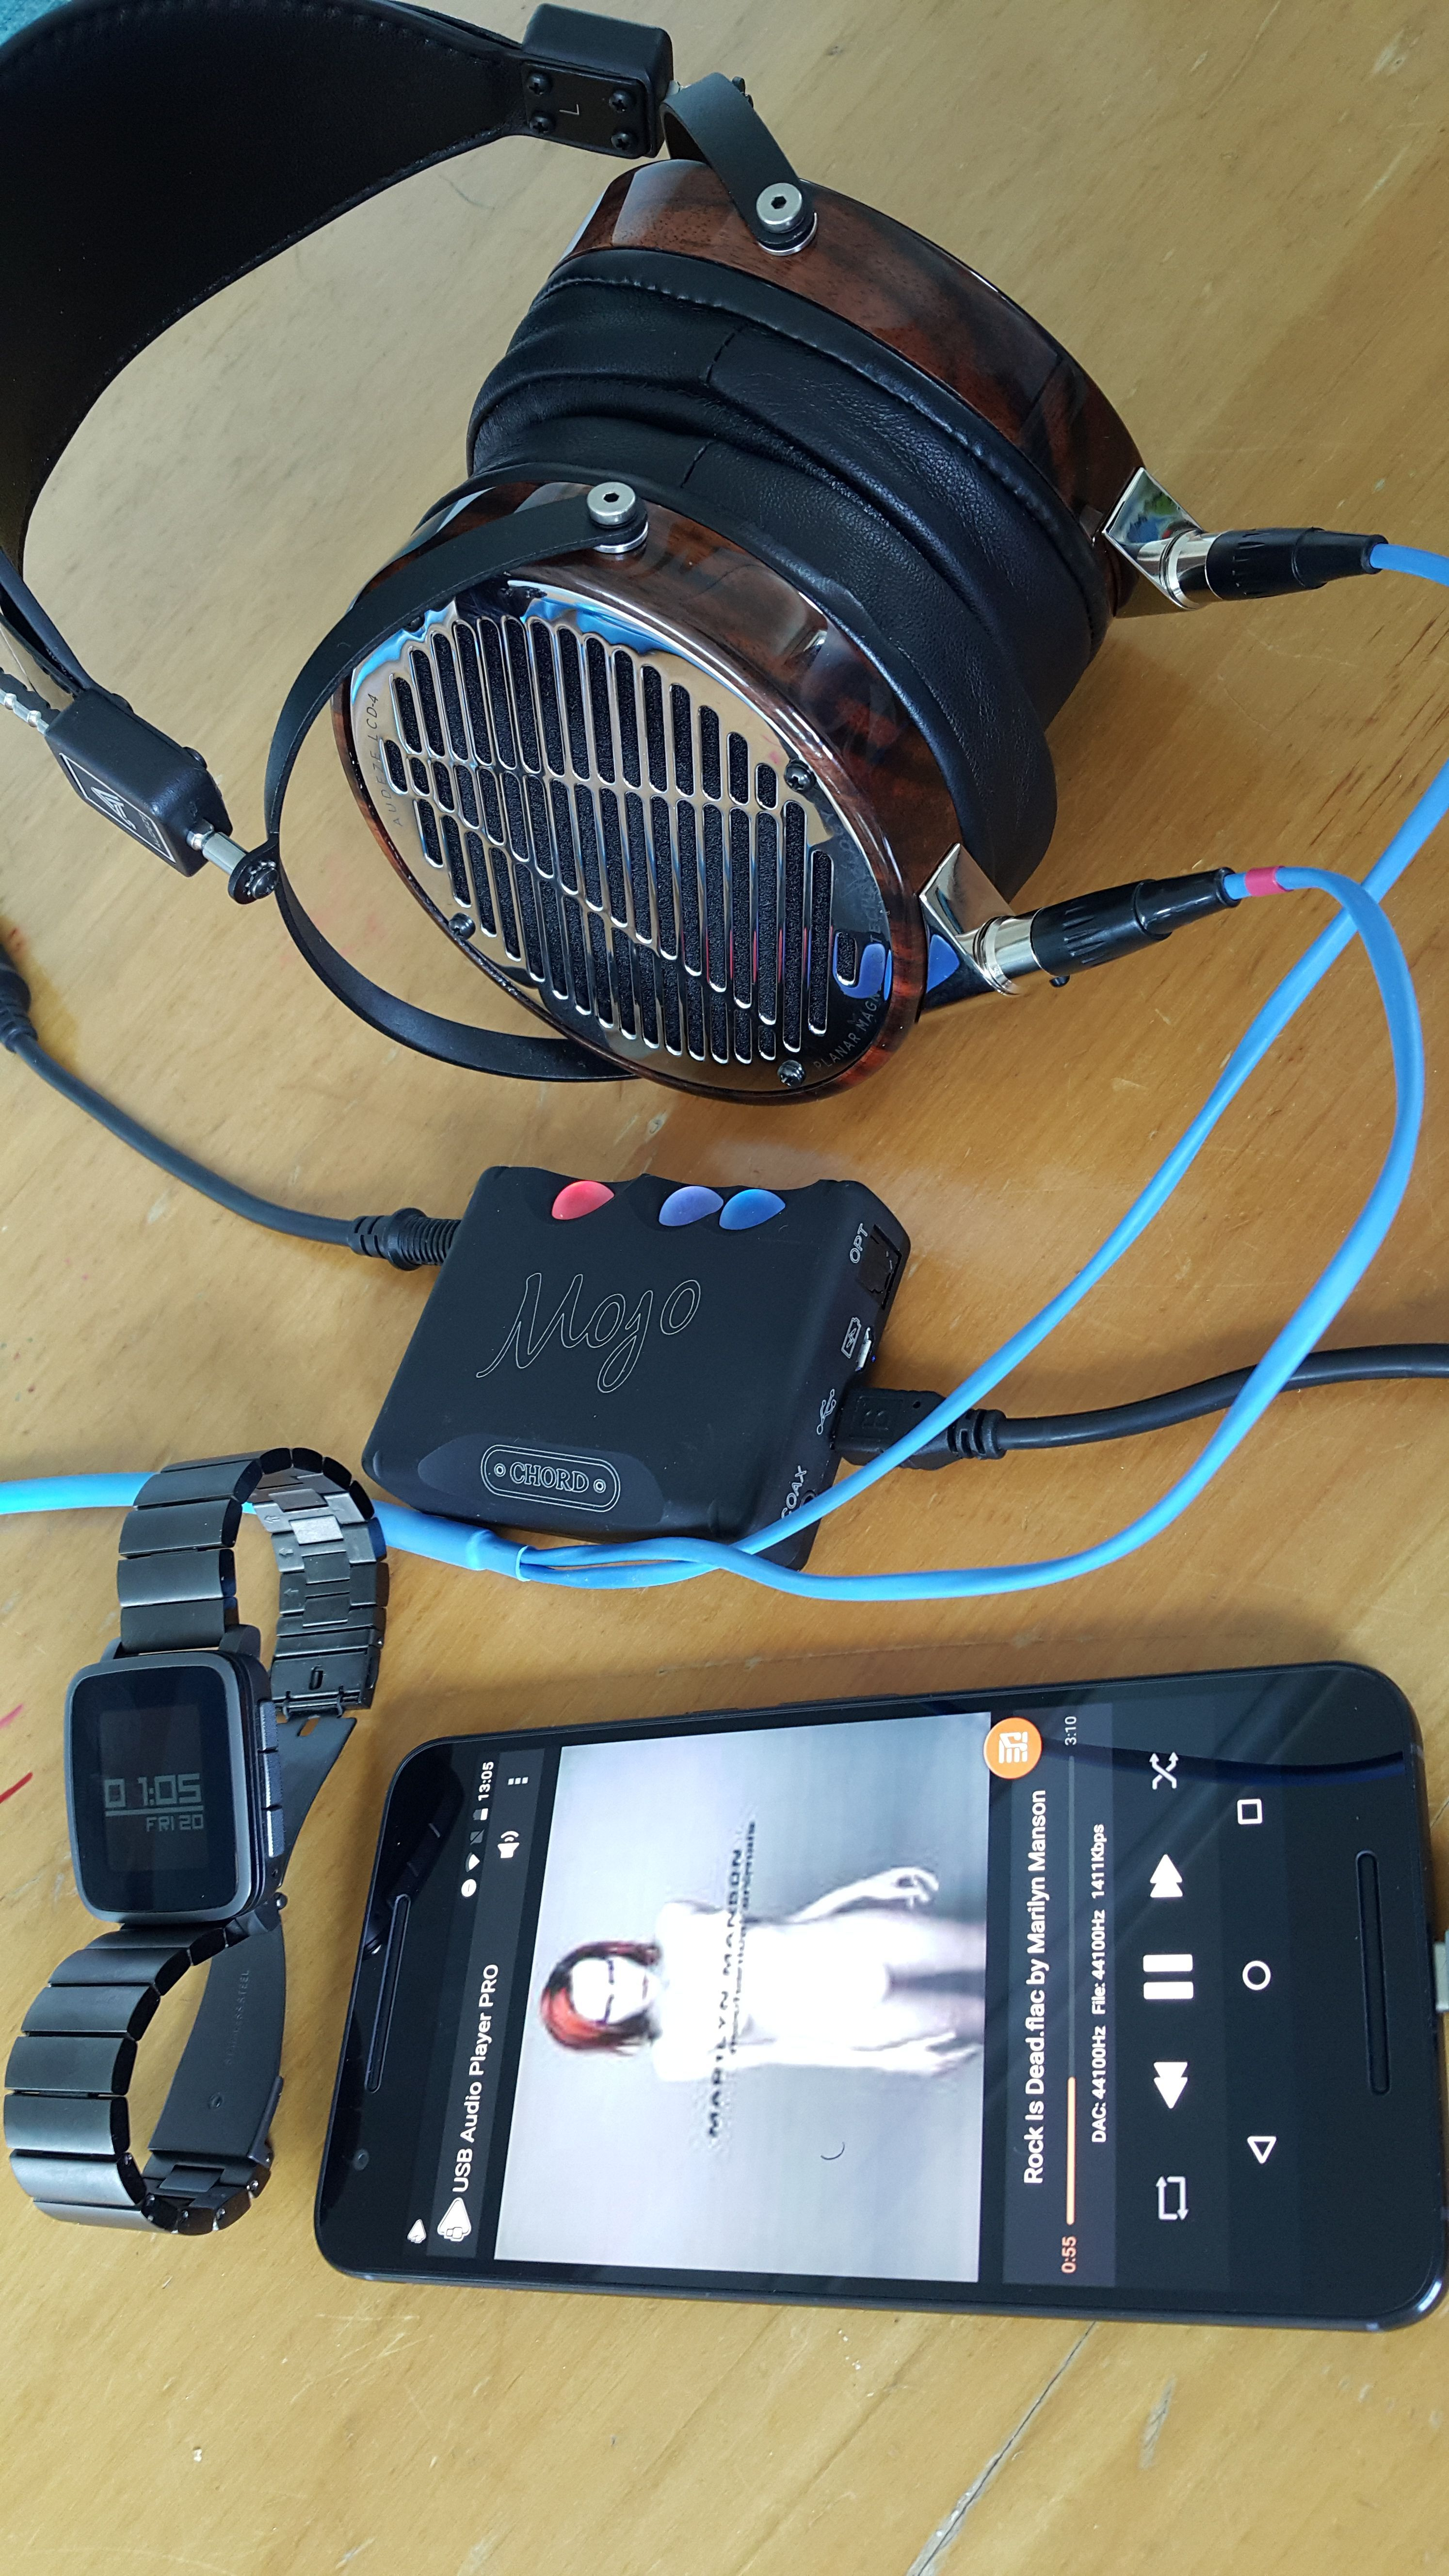 Android Phones And Usb Dacs Page 498 Headphone Reviews Chord Wiring Diagram 20151120 130526